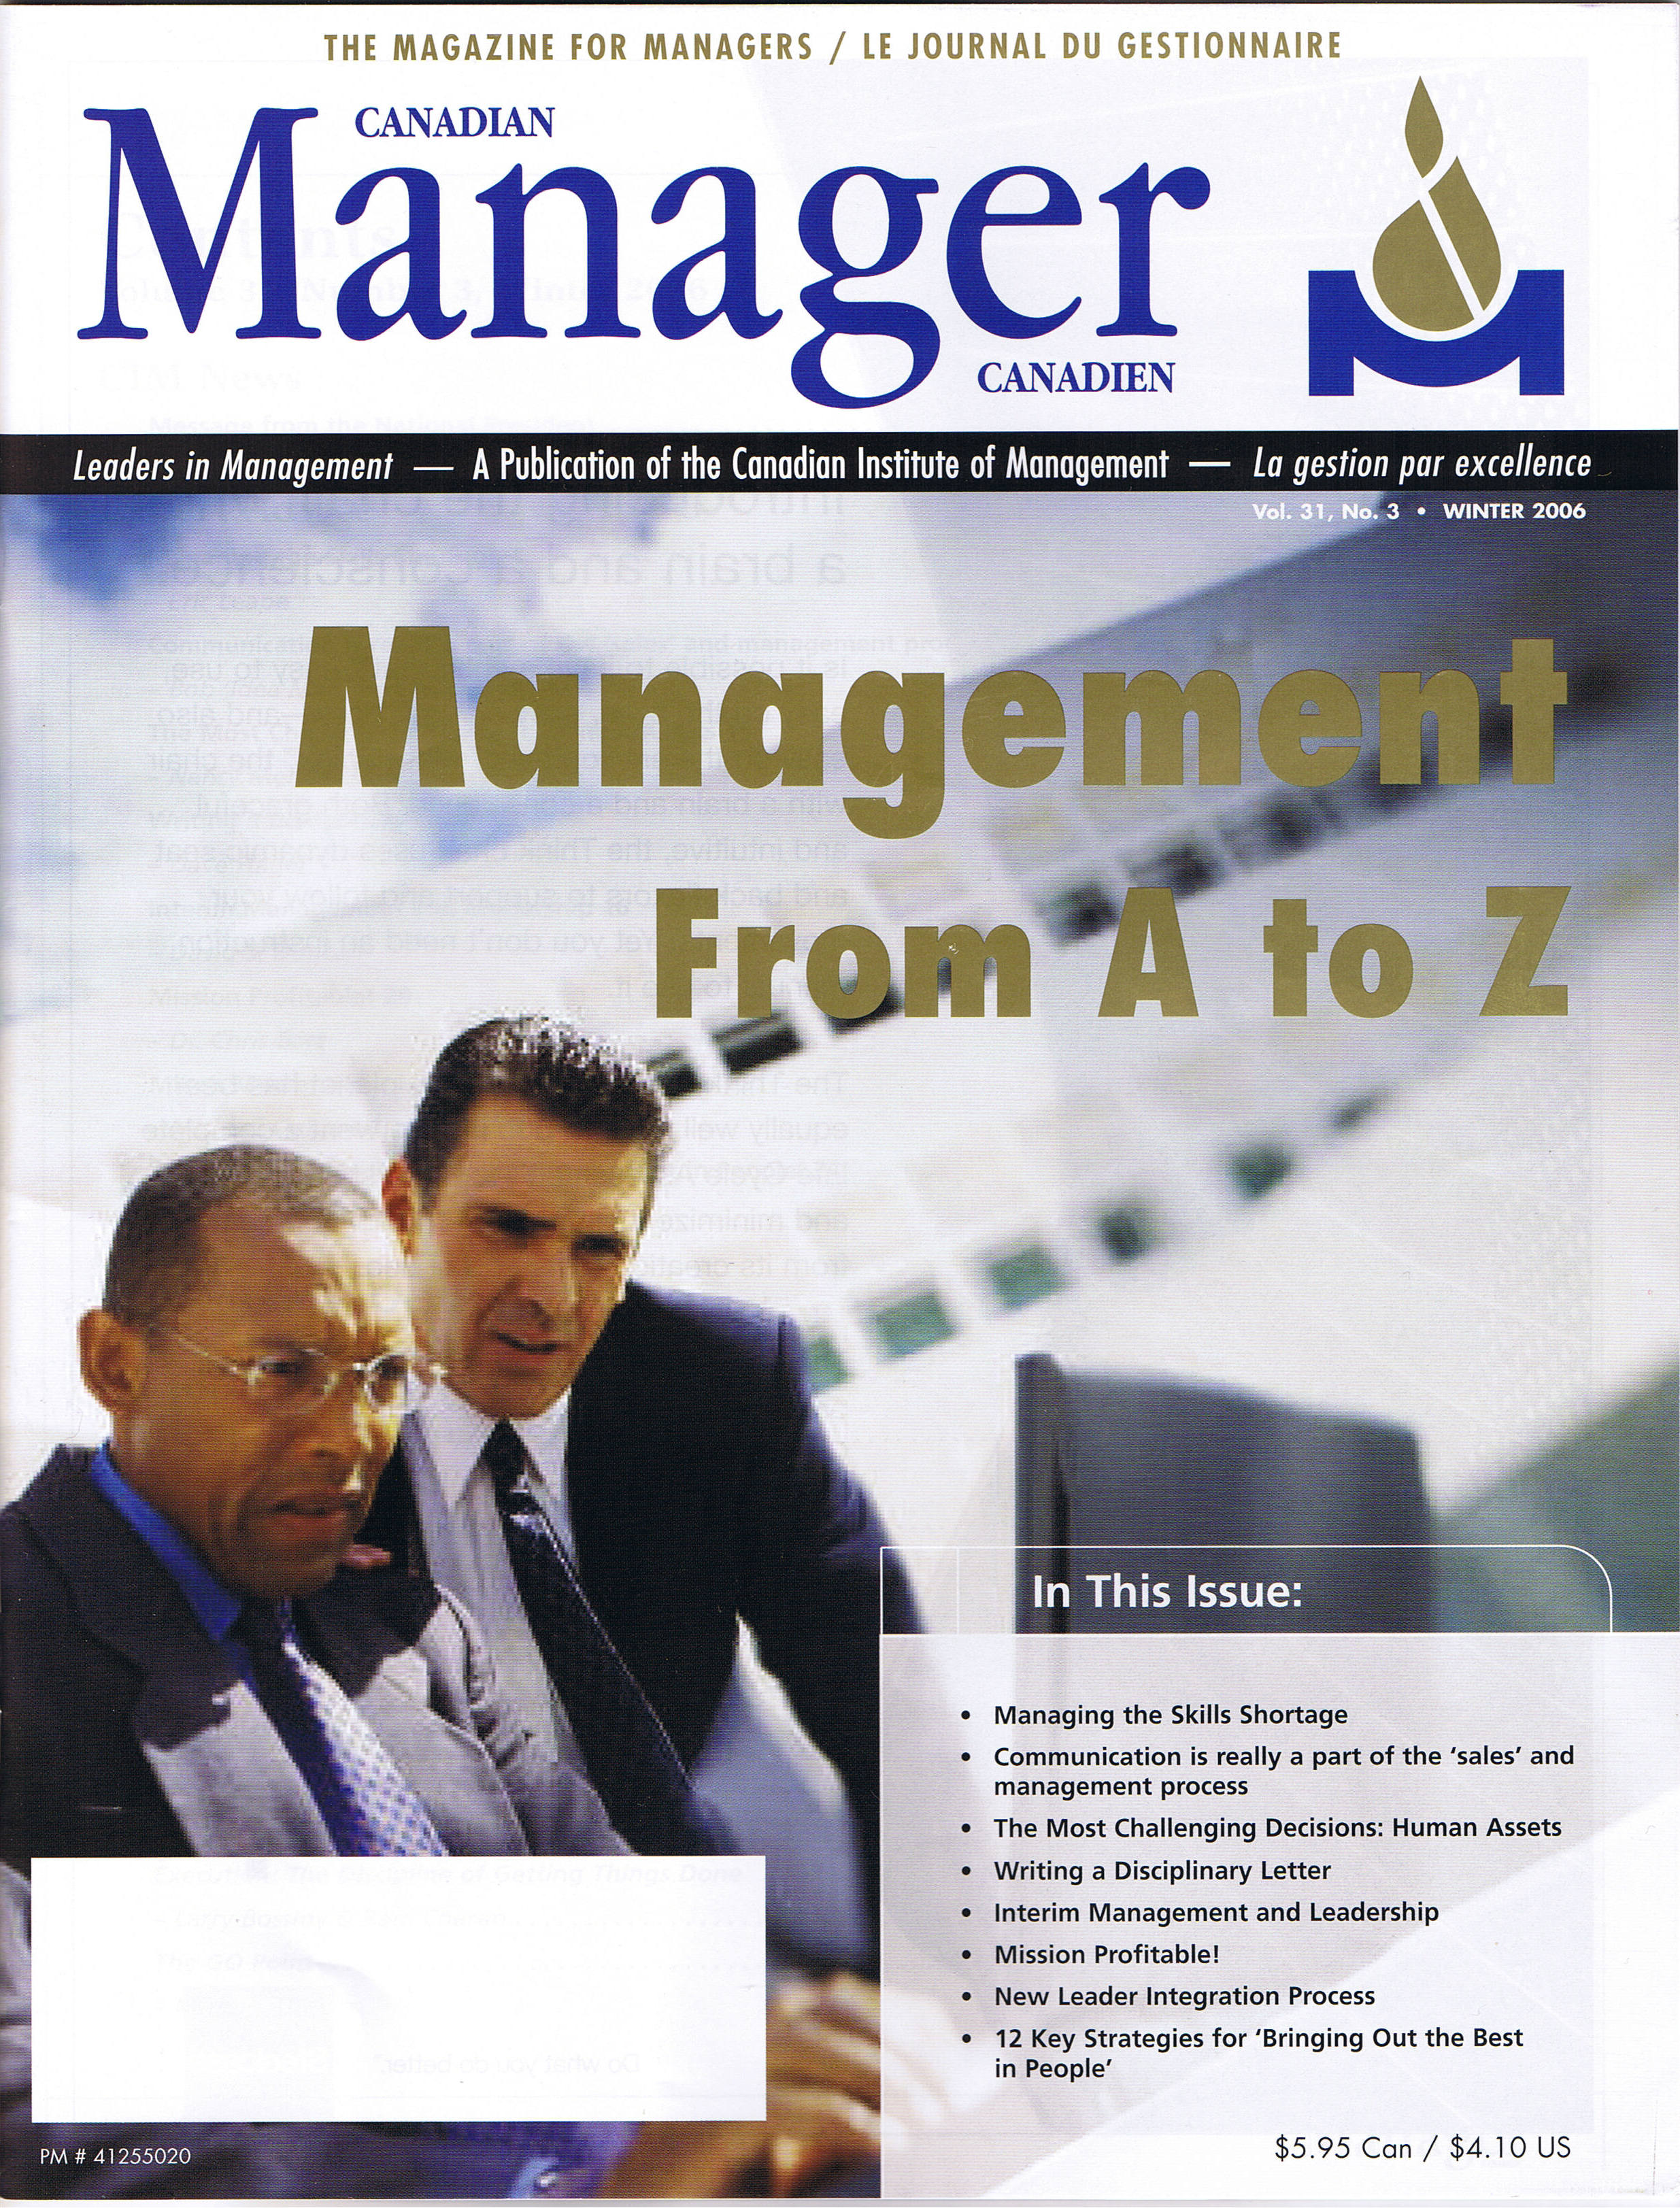 Canadian Manager Magzine is published quartlerly by the Canadian Institute of Management. This issue featured two articles by Canadian business leadership expert Bob 'Idea Man' Hooey